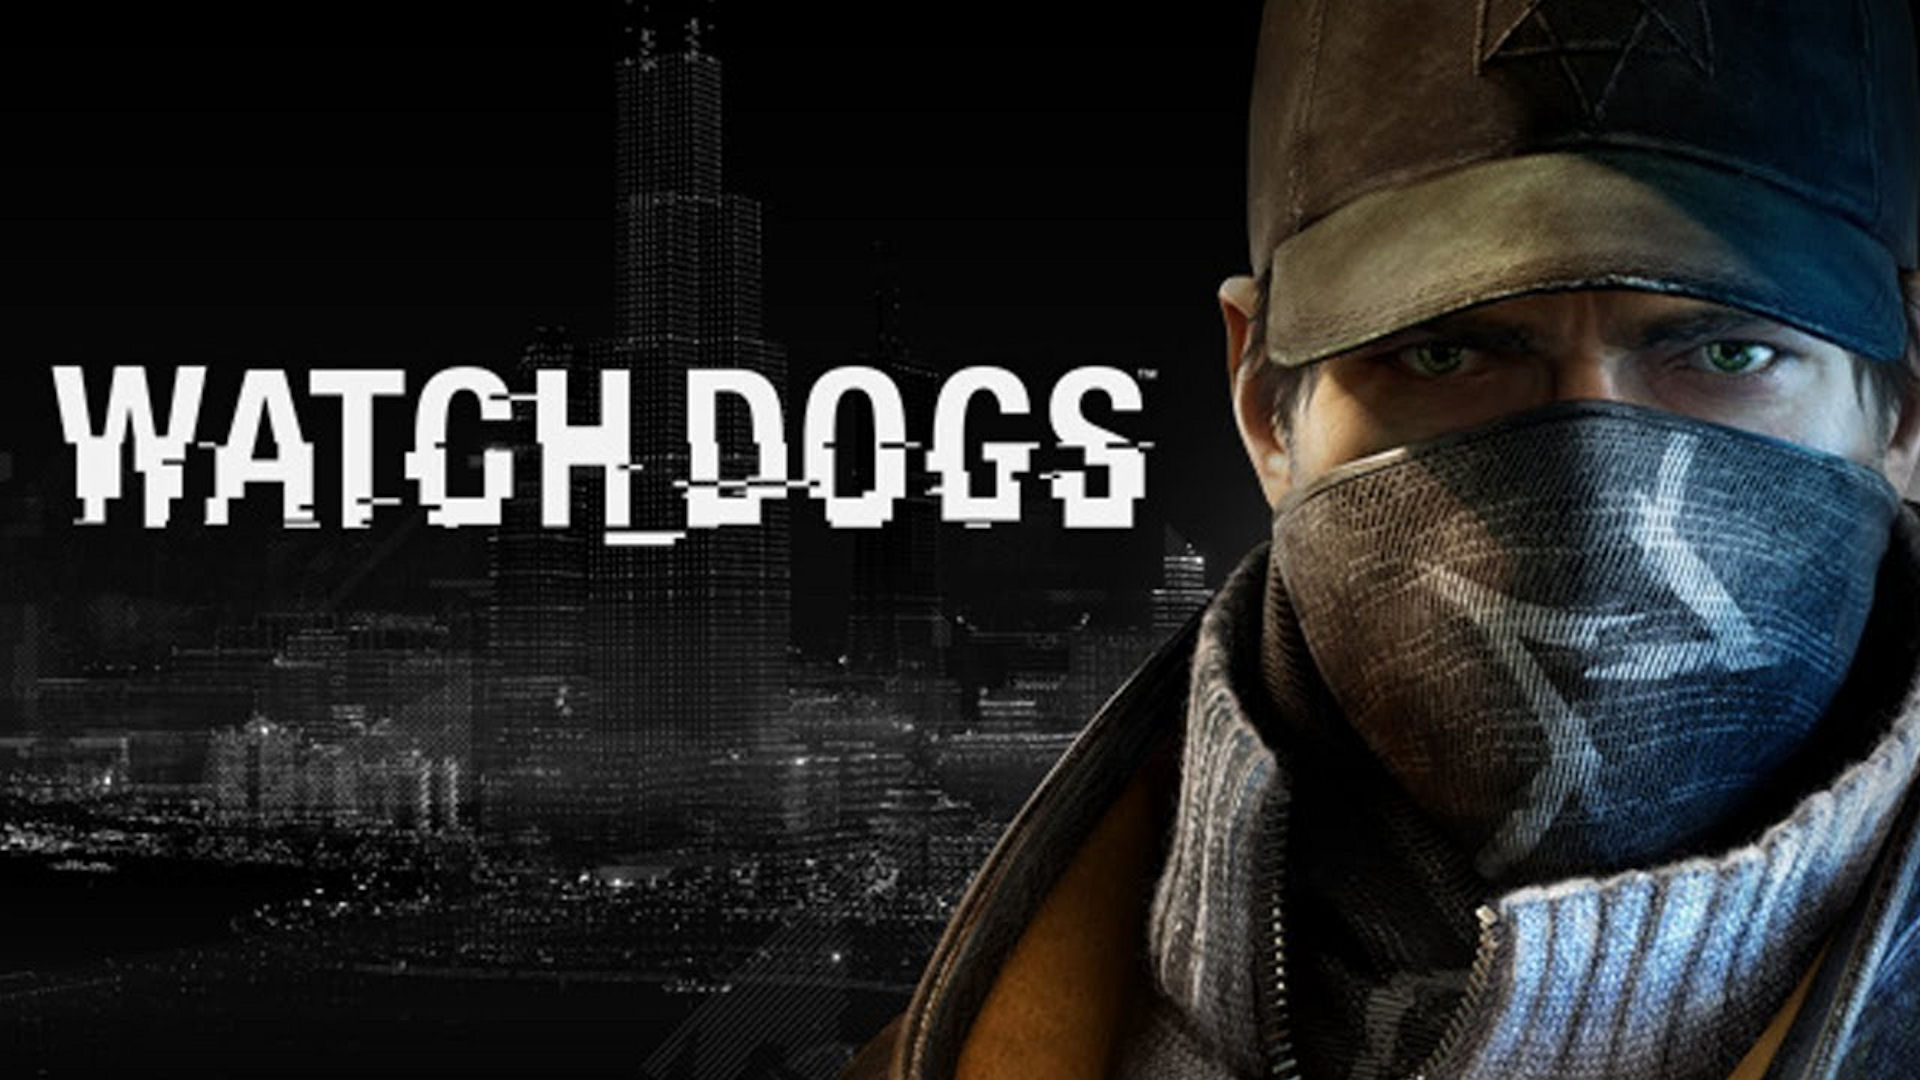 Watch Dogs gratis para PC a través de Uplay